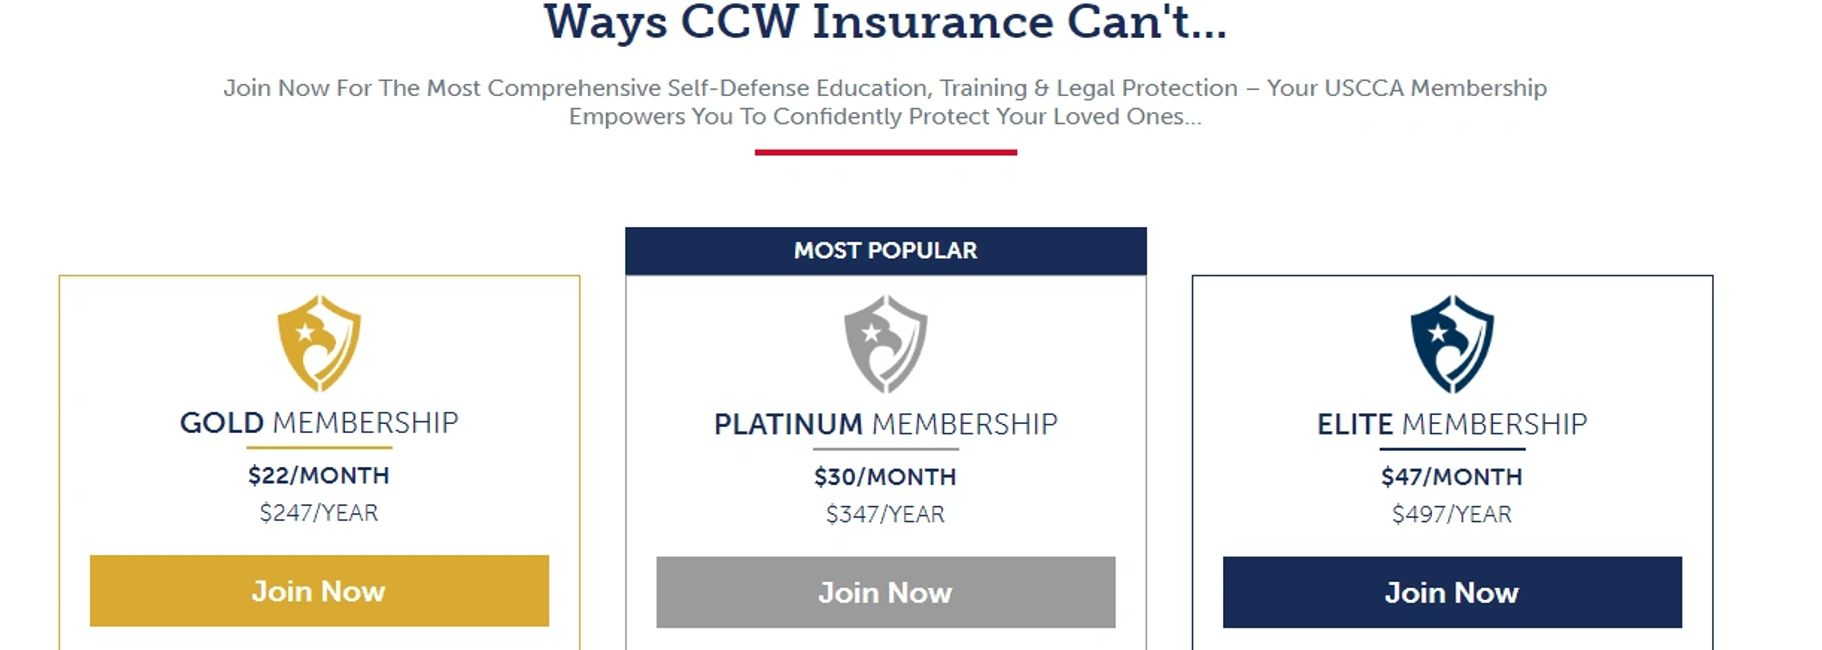 Three USCCA Plans and What They Cover CCW Gold Platinum Elite Membership self-defense insurance guns